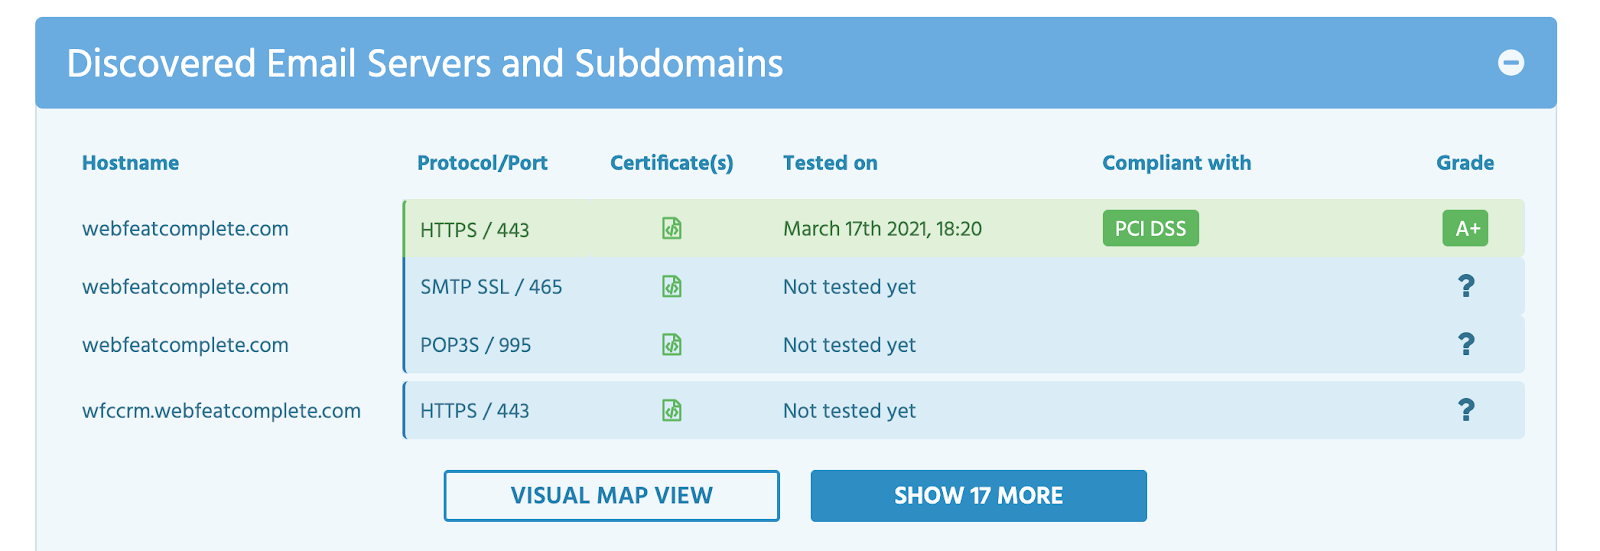 Discovered email servers and subdomains with their corresponding security certificates.